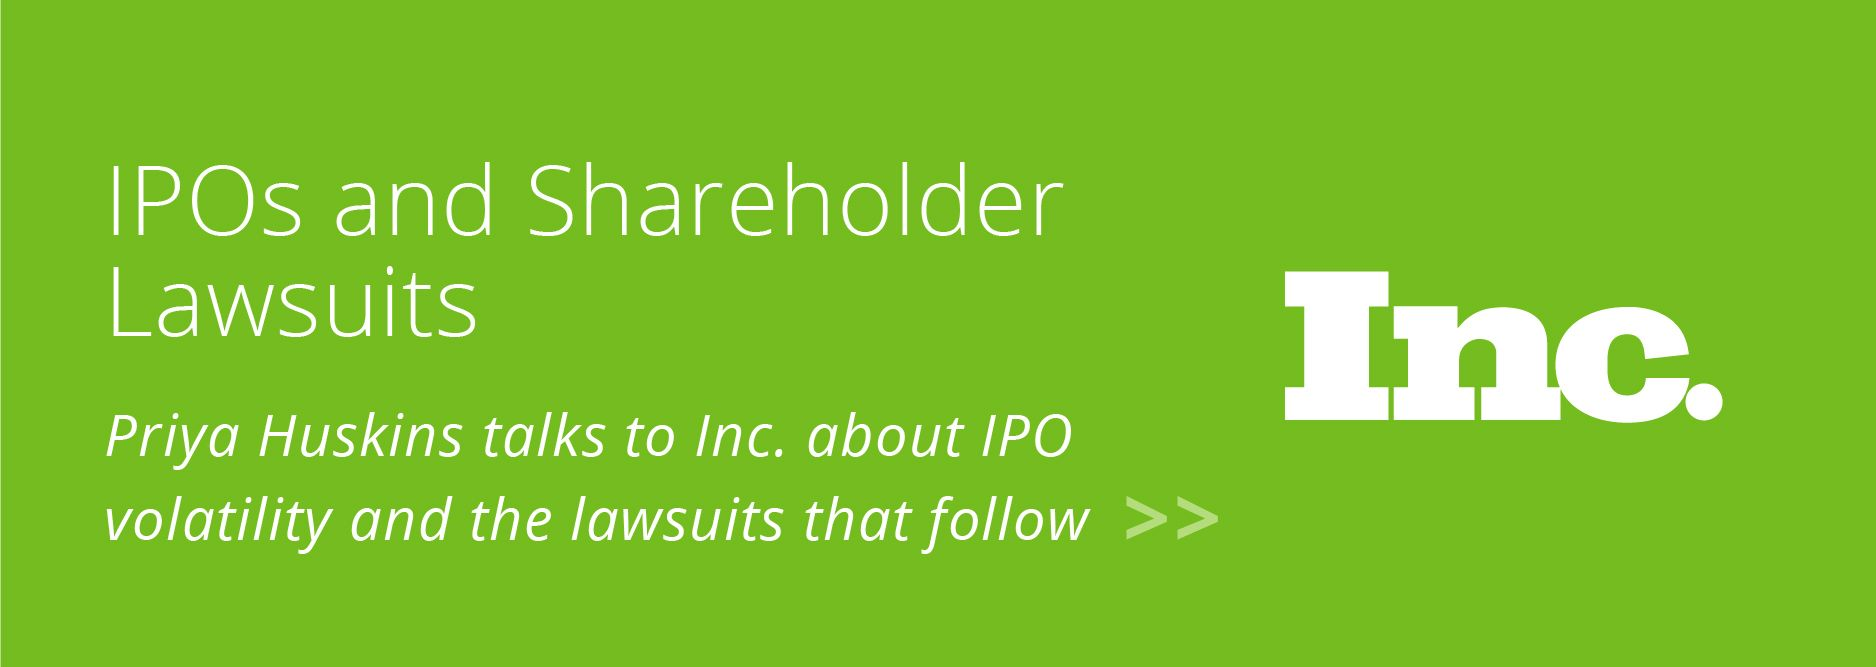 IPOs and Shareholder Lawsuits - Priya Huskins talks to Inc. about IPO volatility and the lawsuits that follow >